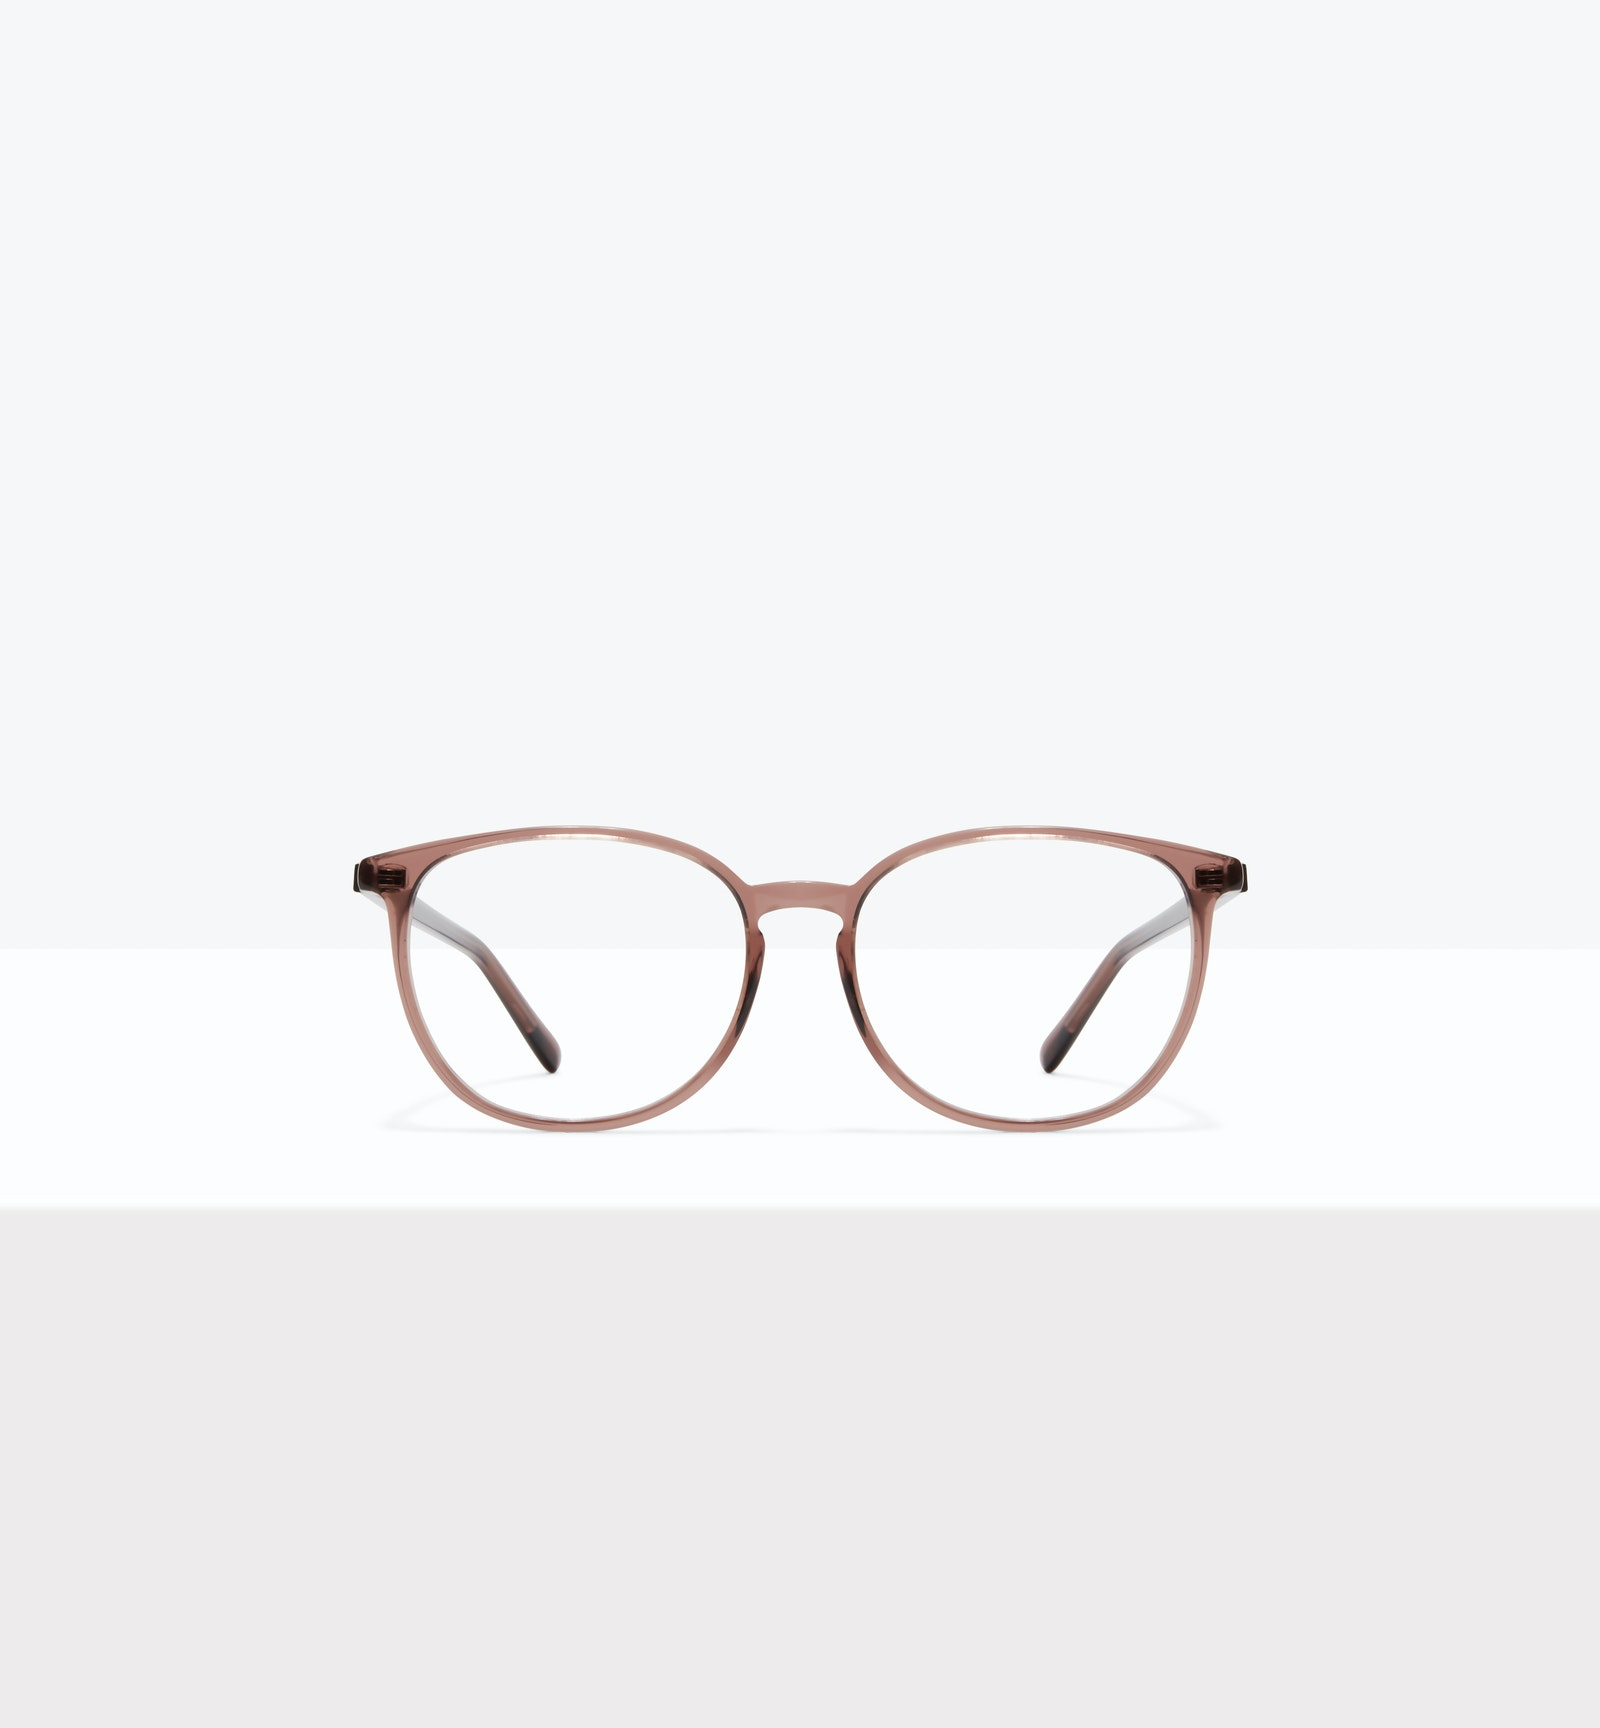 Affordable Fashion Glasses Round Eyeglasses Women Femme Libre S Catherine